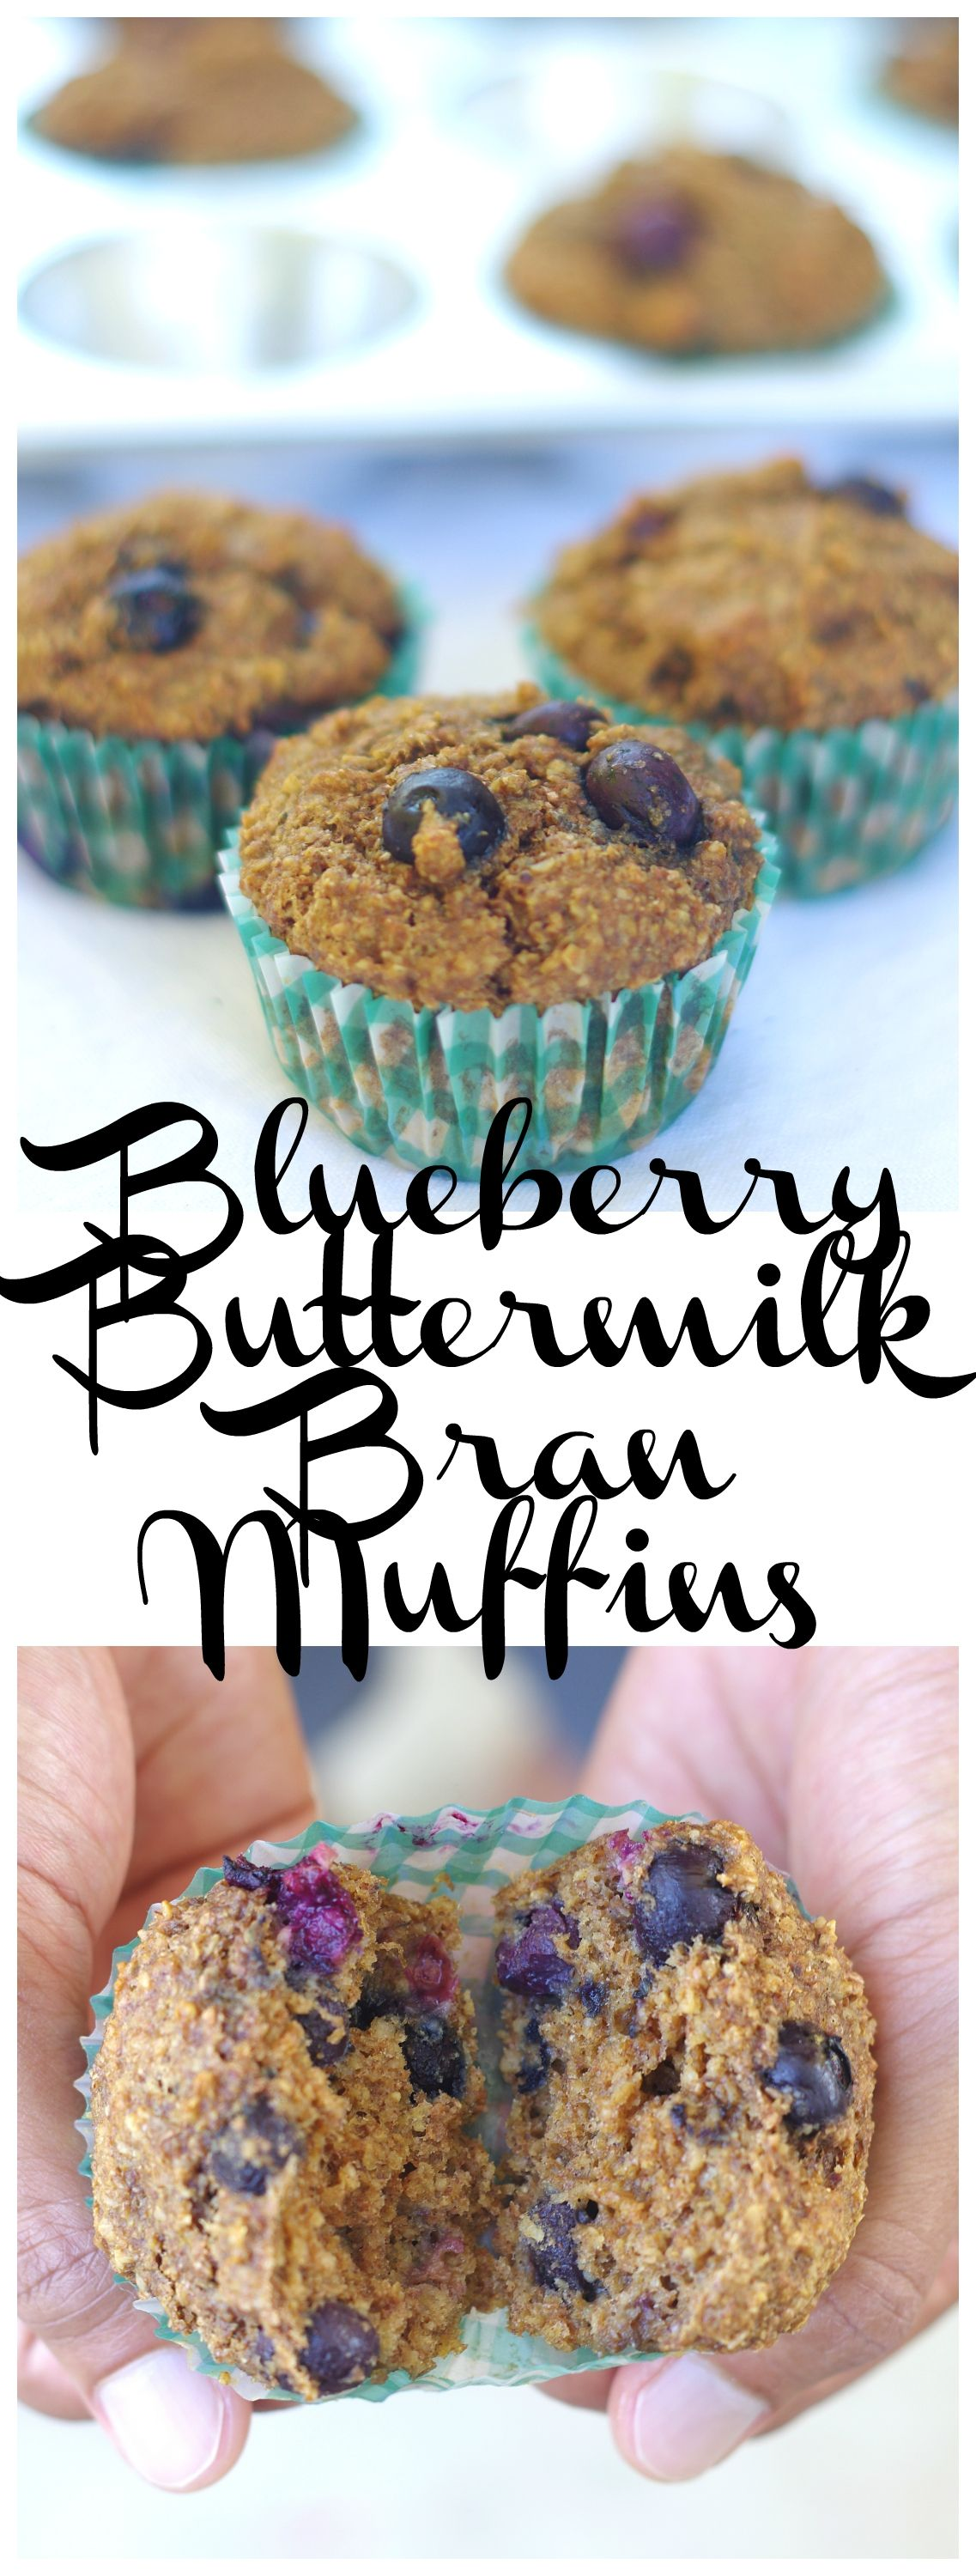 Blueberry Buttermilk Bran Muffins The Forked Spoon Recipe Bran Muffins Buttermilk Bran Muffins Yummy Sweets